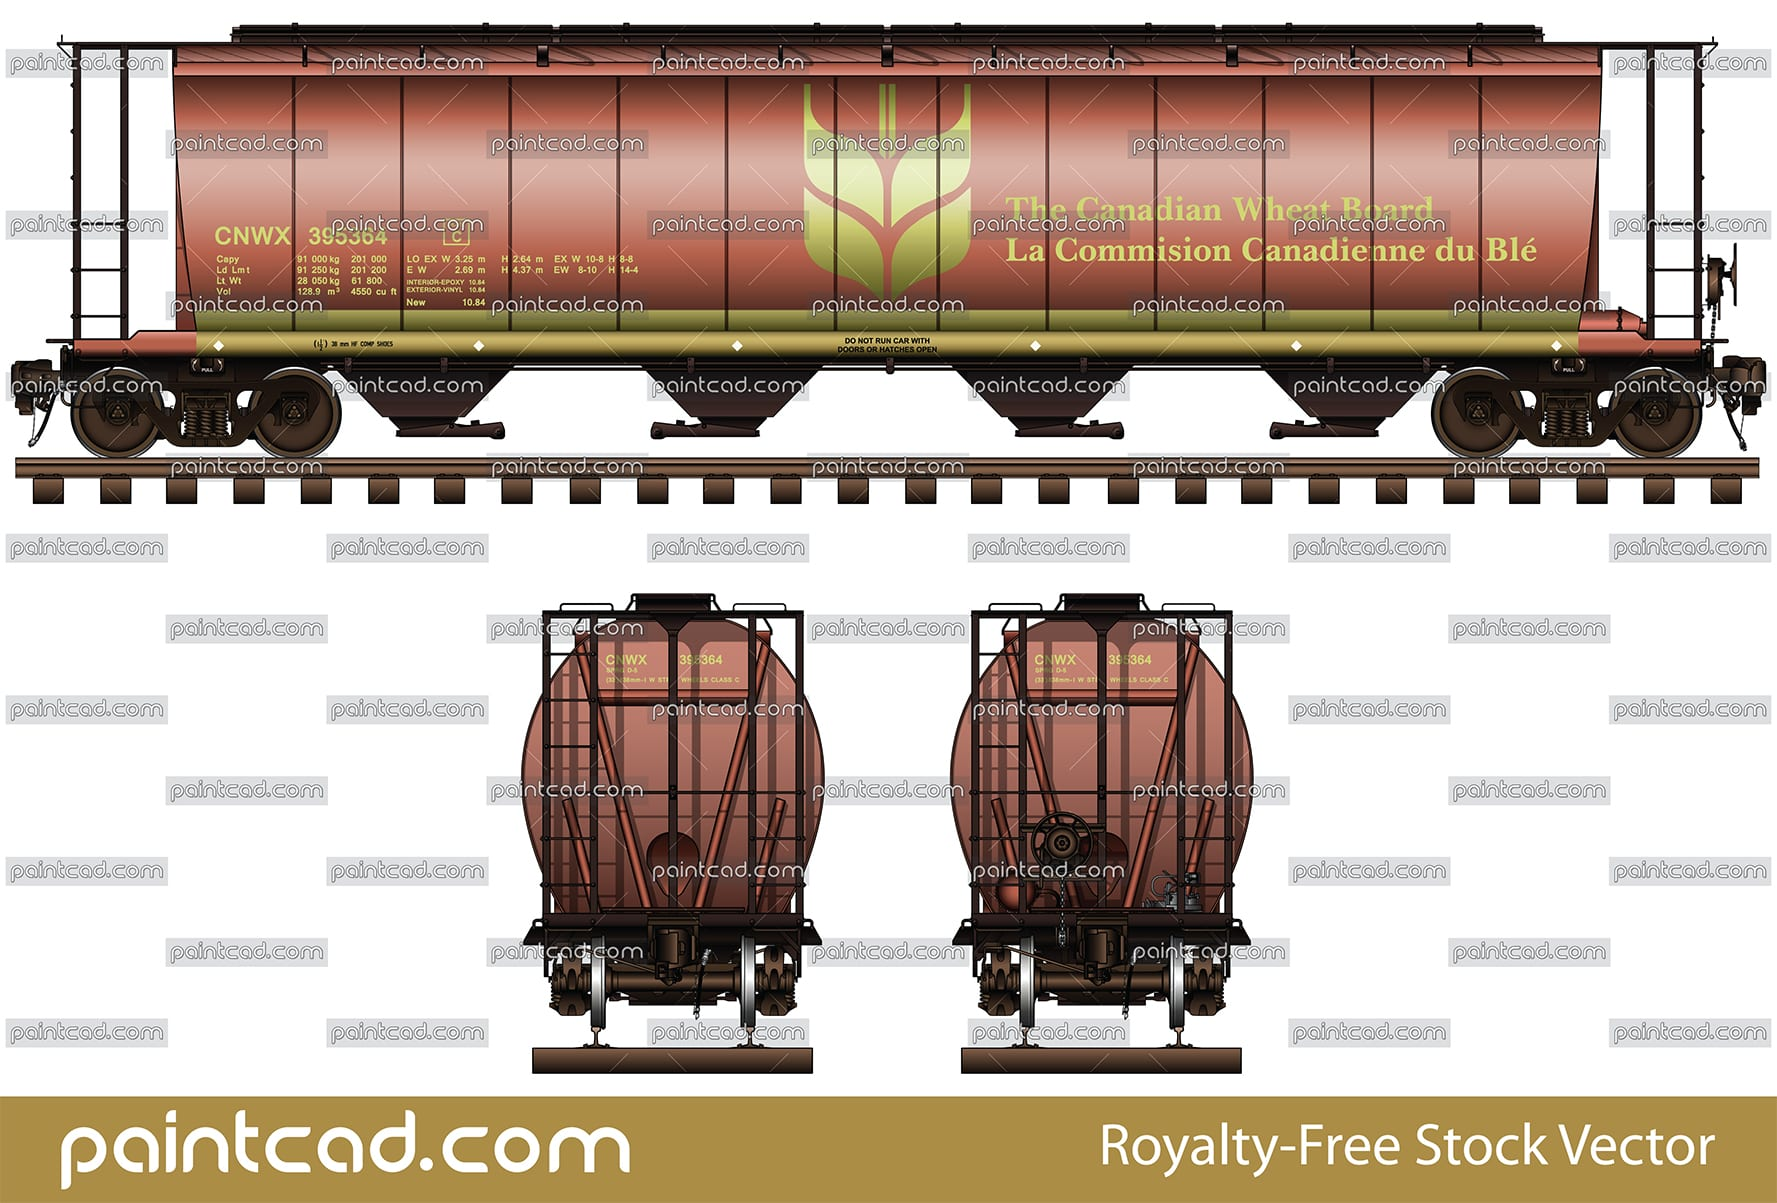 "IMPORTANT: EDITORIAL USE ONLY! Vector illustration of CNWX (Canadian National Railway company) railroad car hopper type with a capacity of 4550 cubic feet for carriage of grain cargo on long distances. This model has a four container compartments, with a narrow opening at bottom, for unloading. The shape of interior bay allows unloading by means of gravity. Side and front views with all technical parameters, inscriptions (Commission Canadienne du blé in French and ""Wheat logo""), instructions for safe handling and hand brake. High-quality color diagram. Isolated objects over white background."